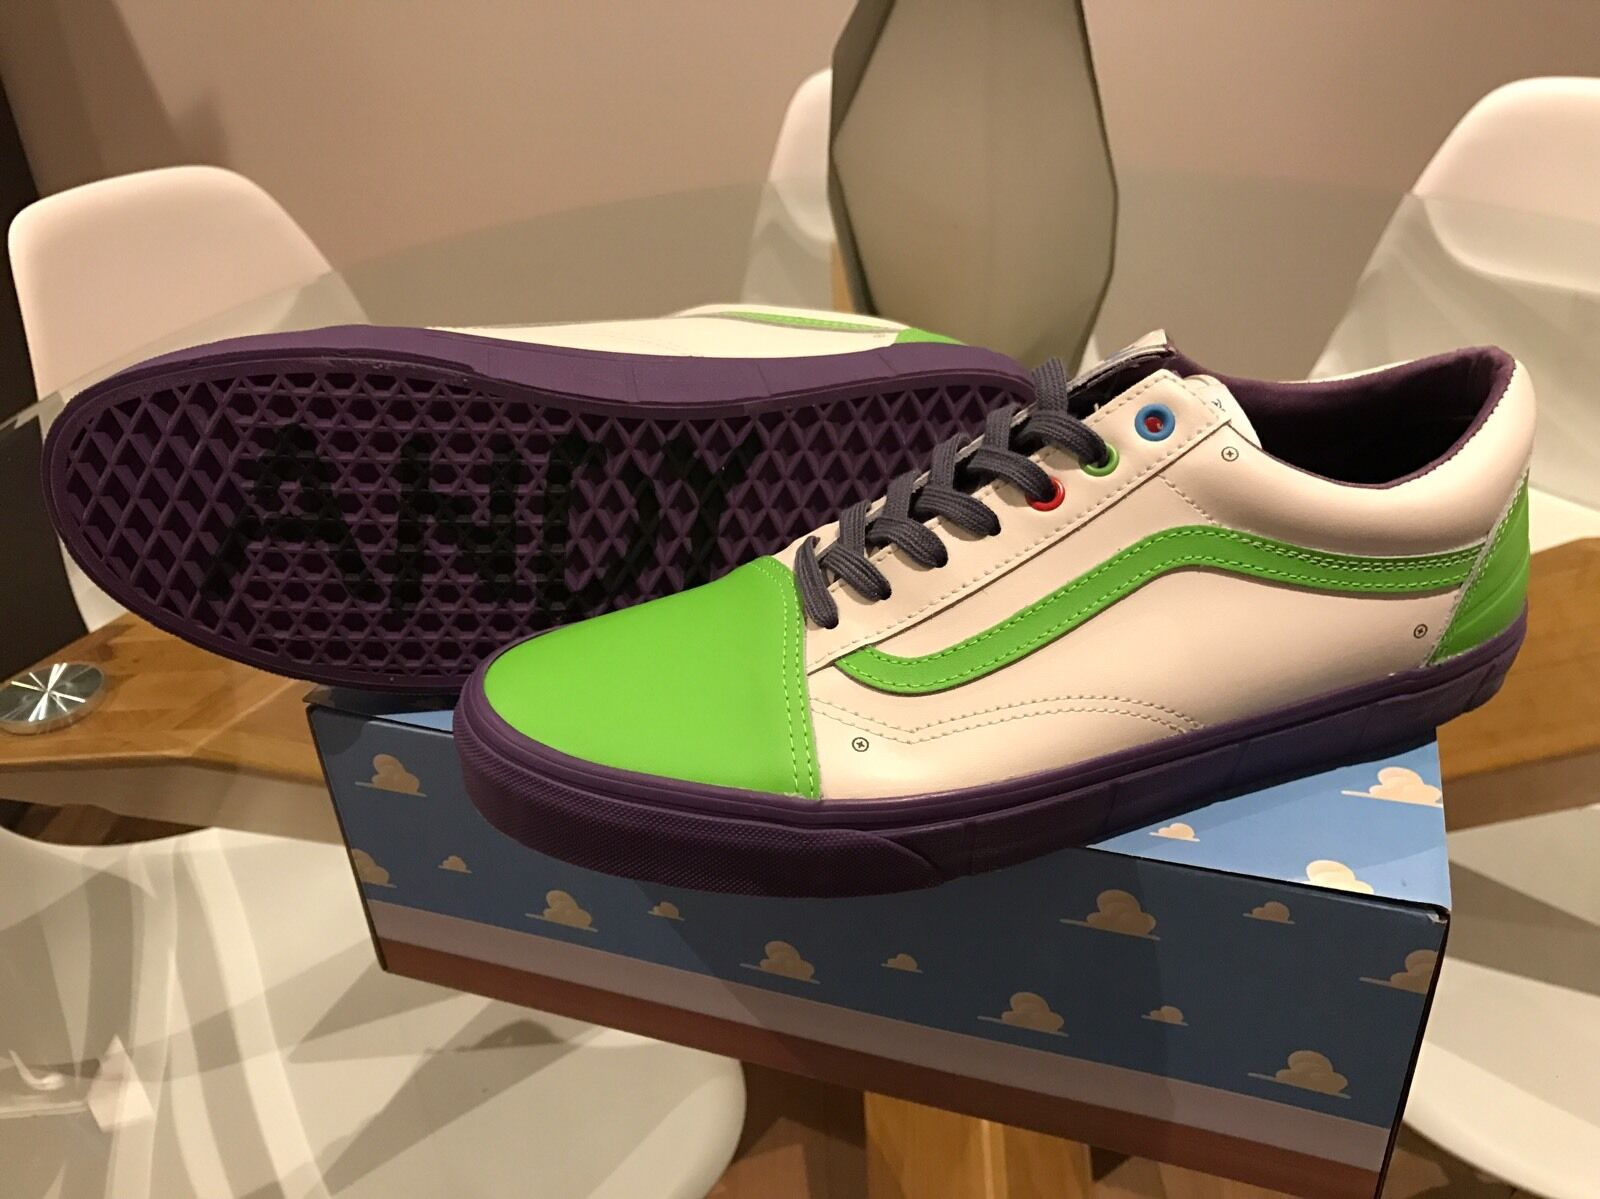 Vans x Toy Story Buzz Old Skool (misura /US 3.5) Limited Ed. ora esaurita